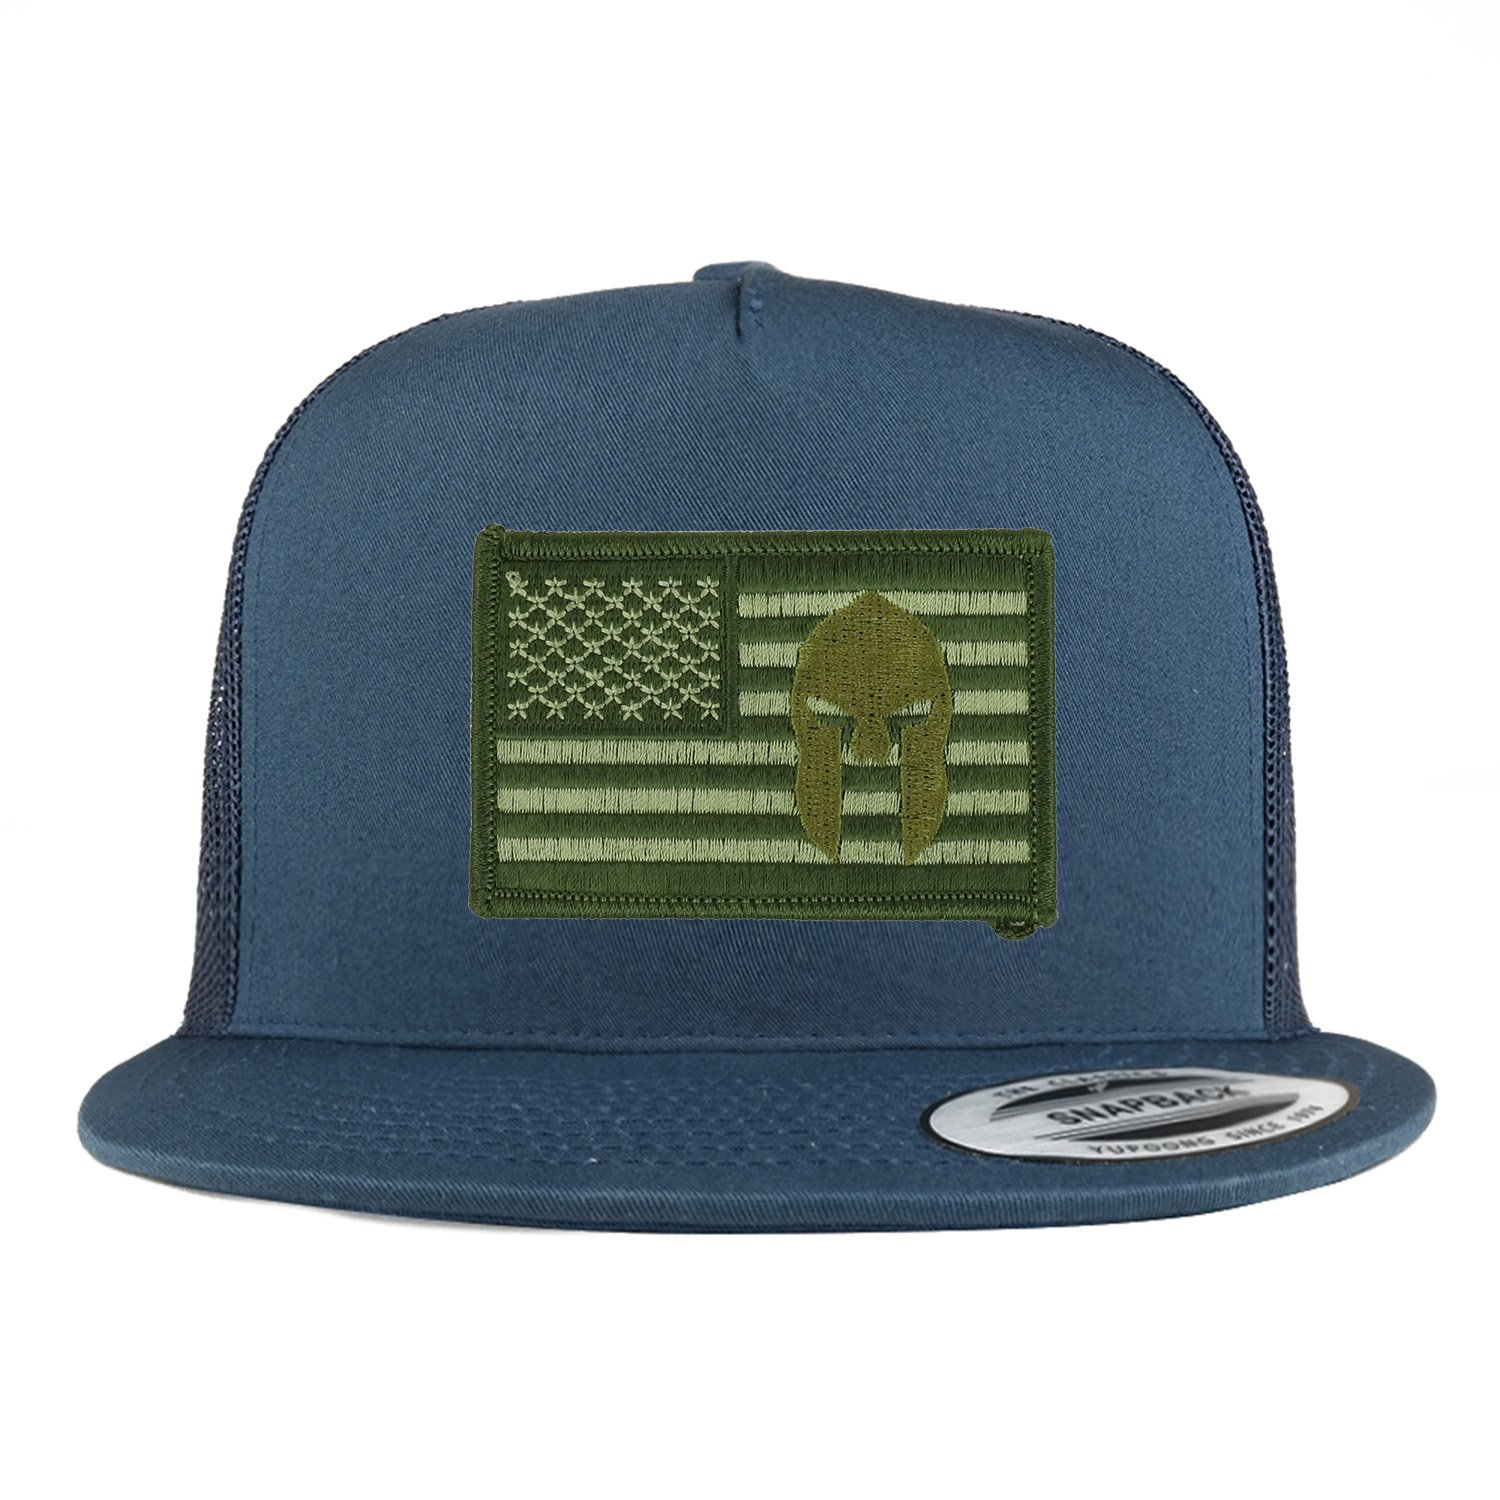 559ef1f5cafc6f Armycrew 5 Panel Olive USA Flag Spartan Embroidered Patch Flatbill Mesh  Snapback - Black at Amazon Men's Clothing store: